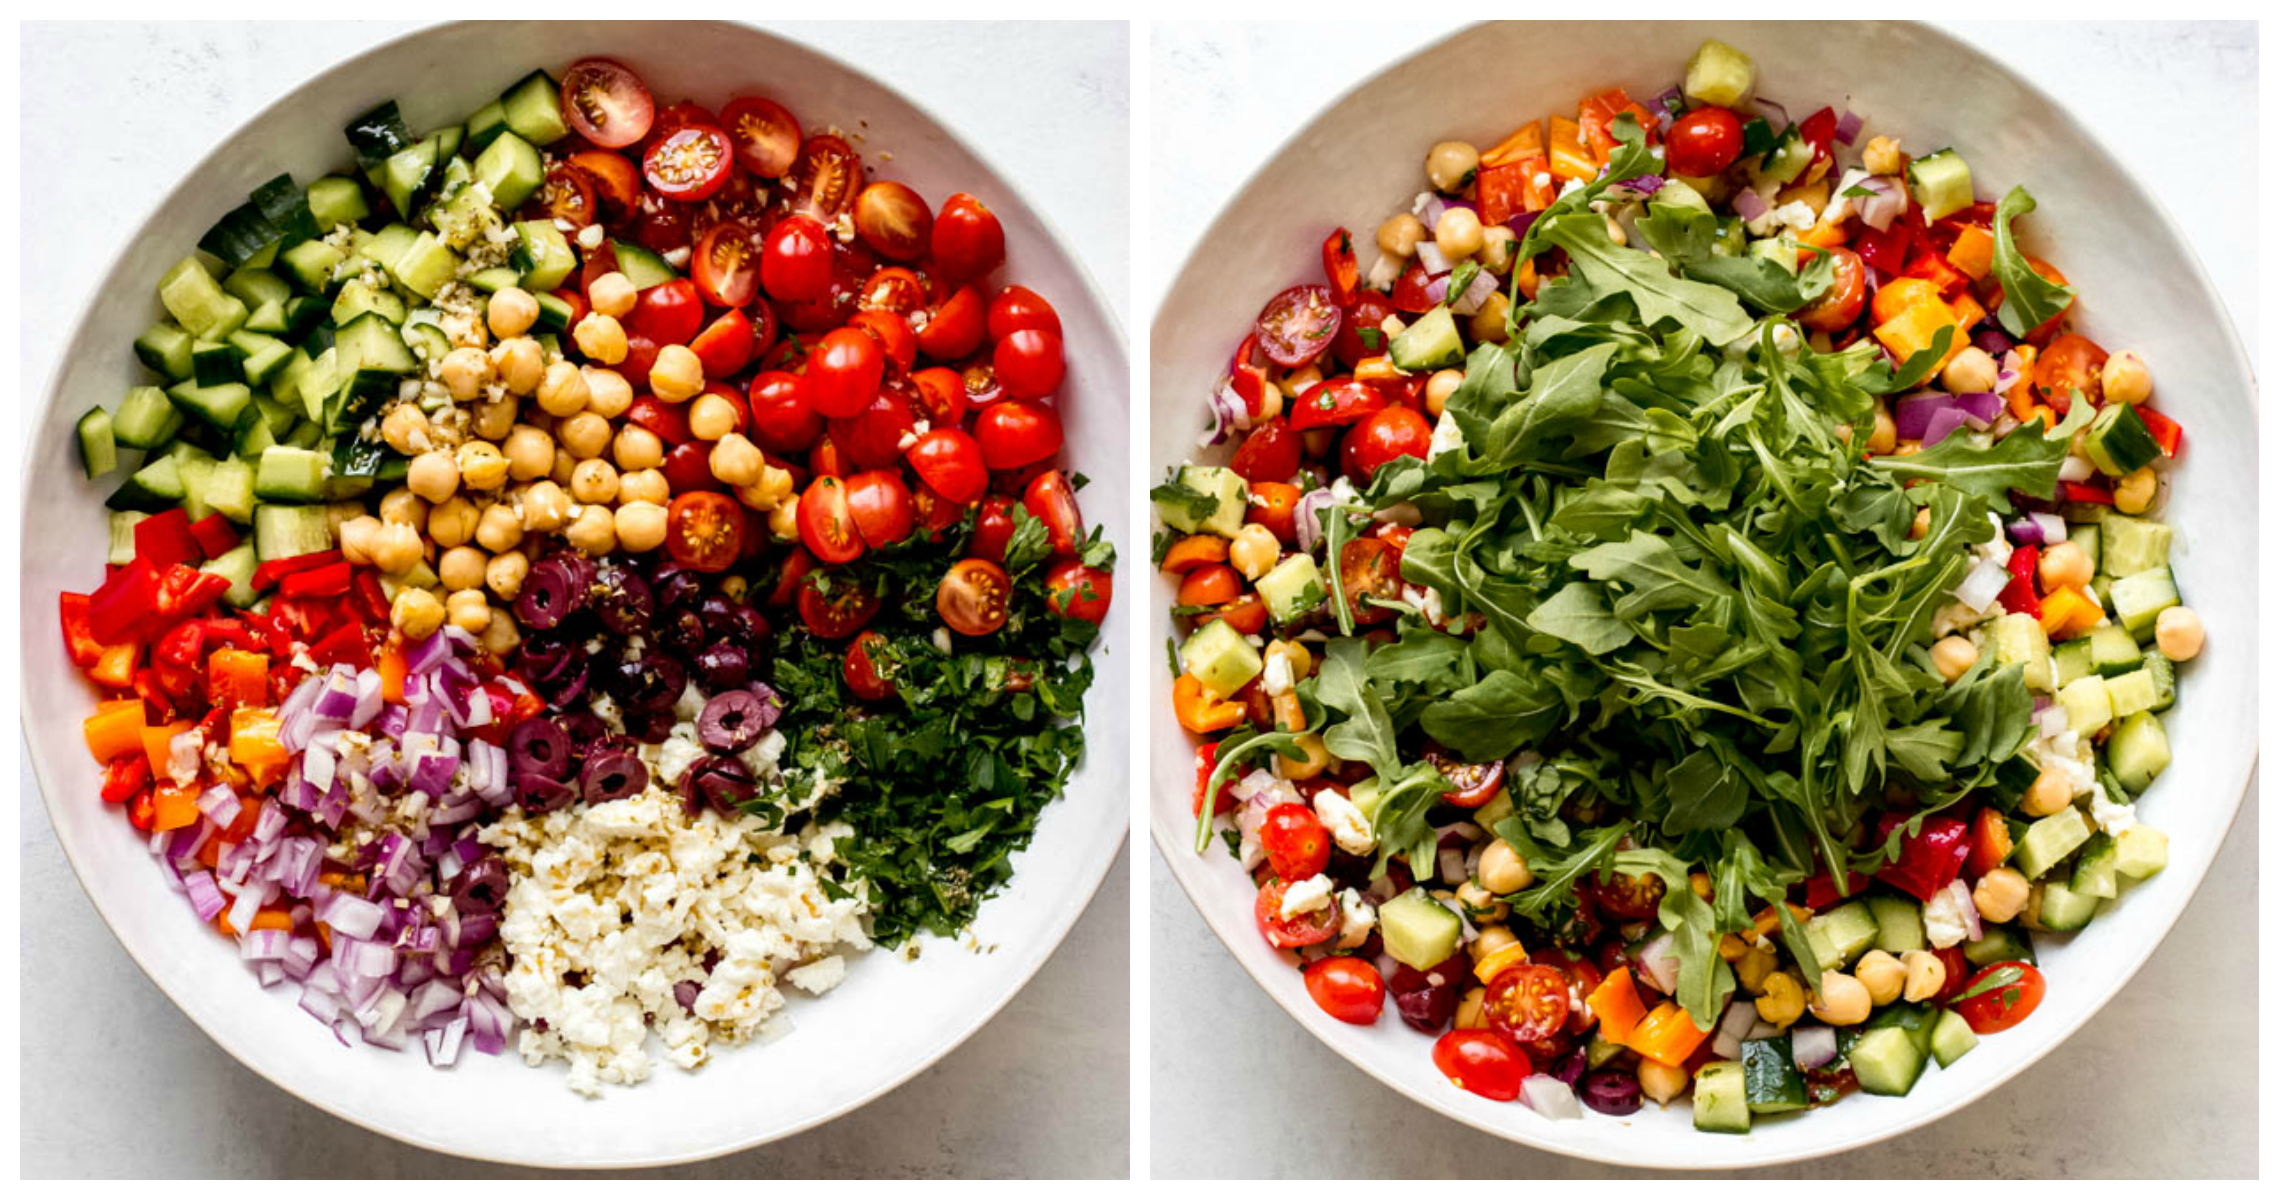 Chickpea salad in white bowl with arugula